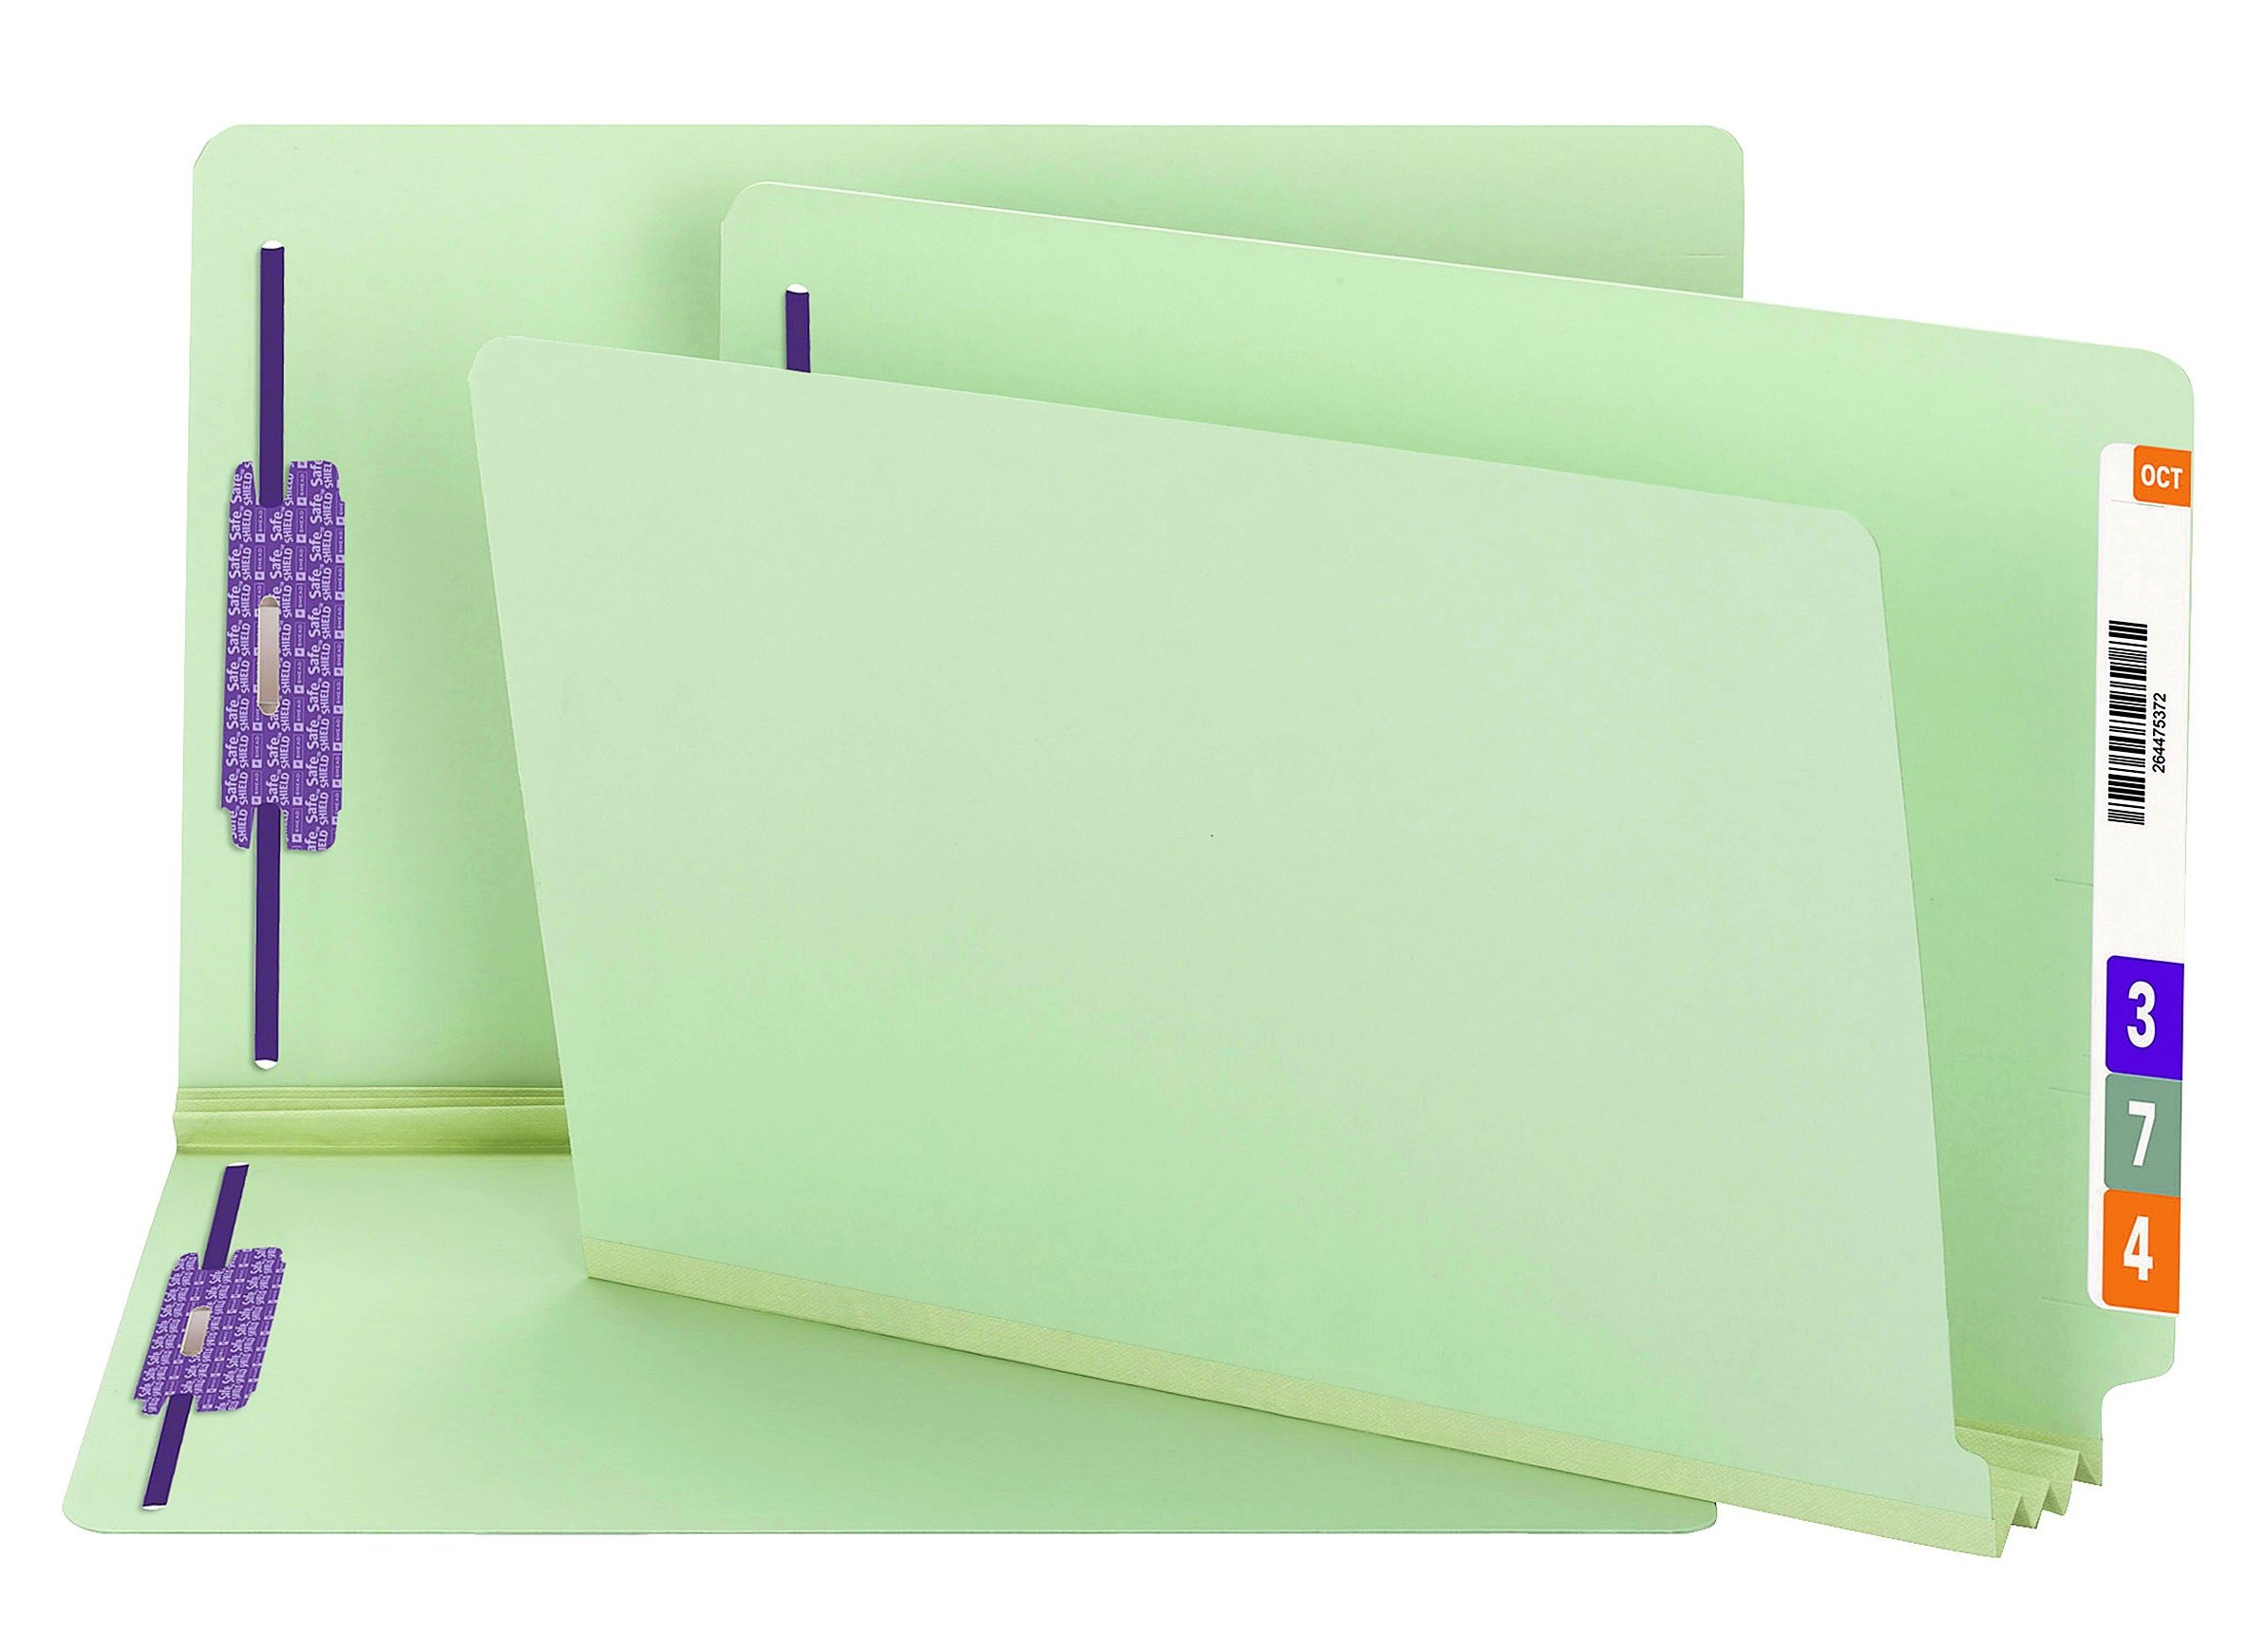 Smead End Tab Pressboard Fastener File Folder with SafeSHIELD Fasteners, 2 Fasteners, 3'' Expansion, Legal Size, Gray/Green, 25 per Box (37725)